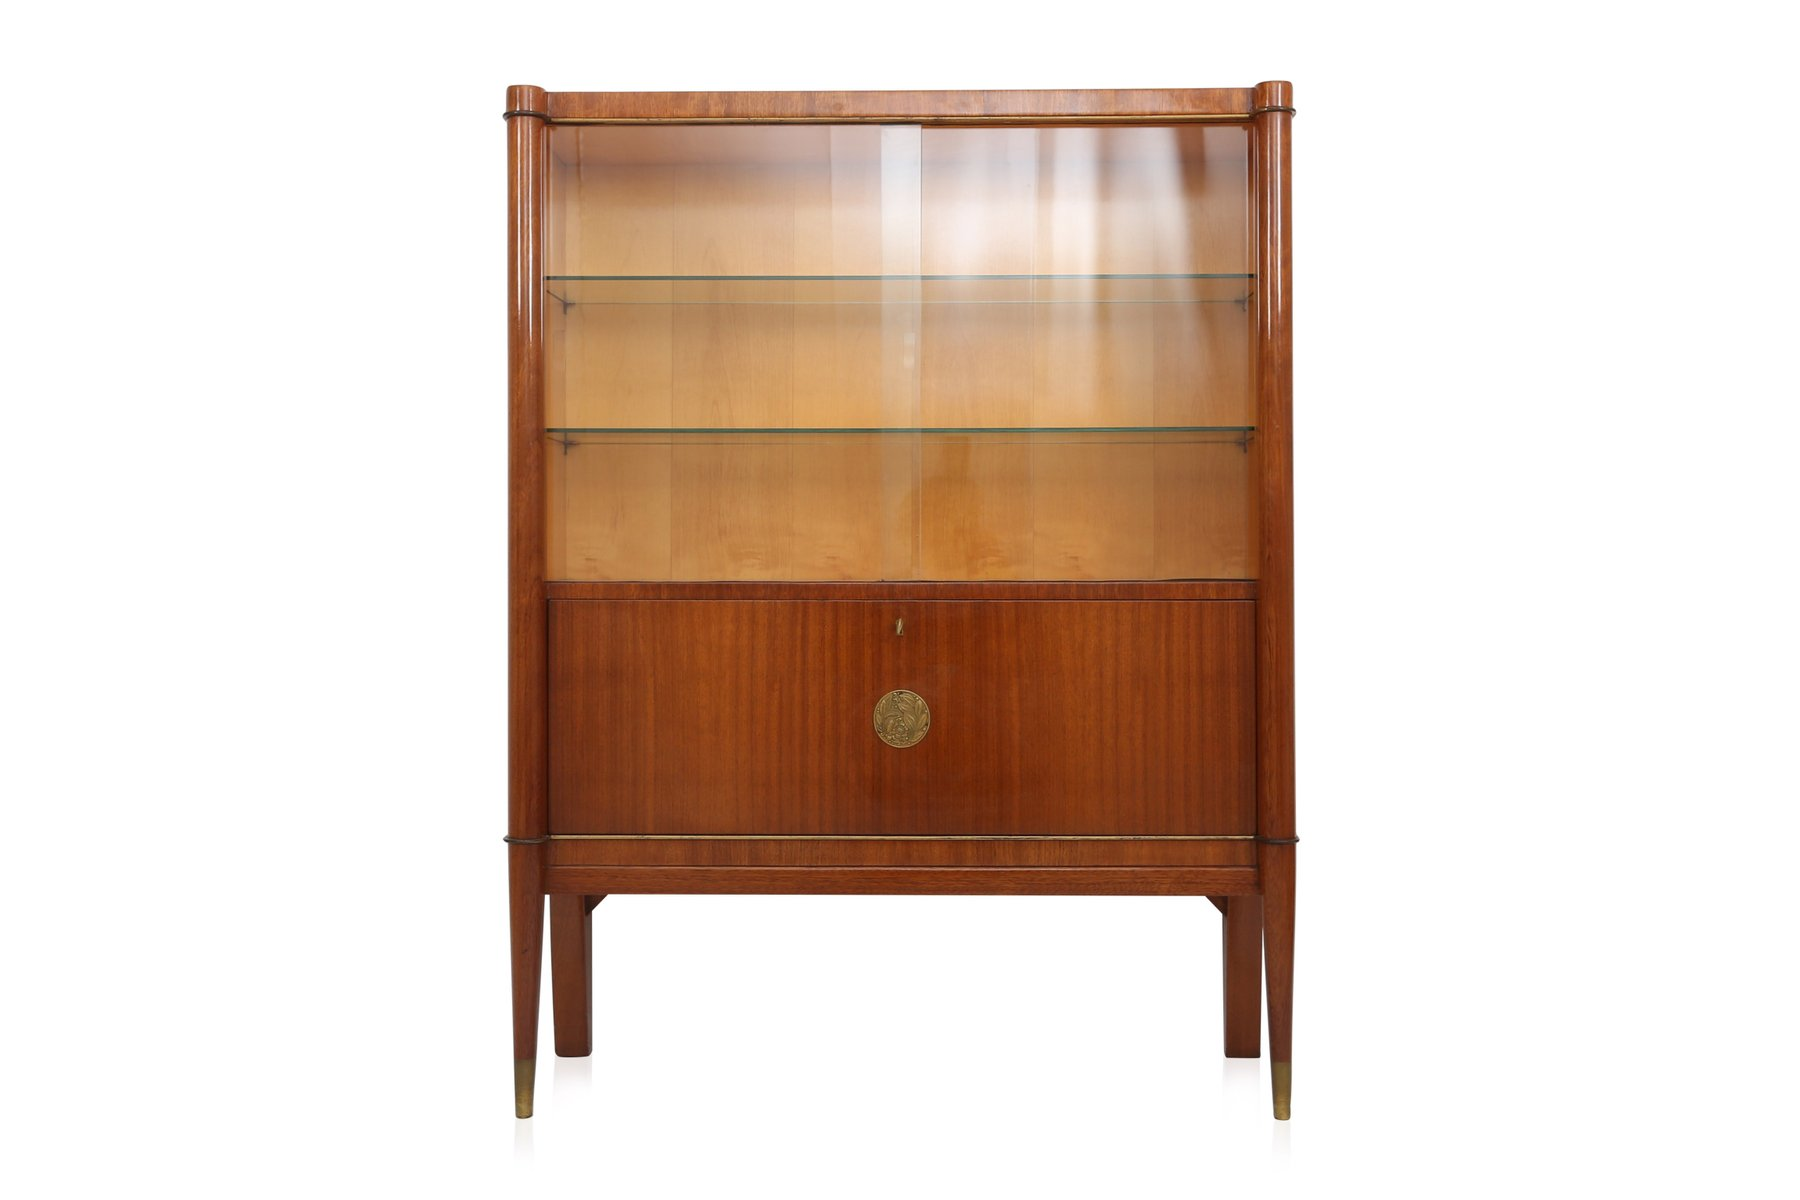 Vitrine cabinet from de coene fr res 1950s for sale at pamono for Sideboard vitrine